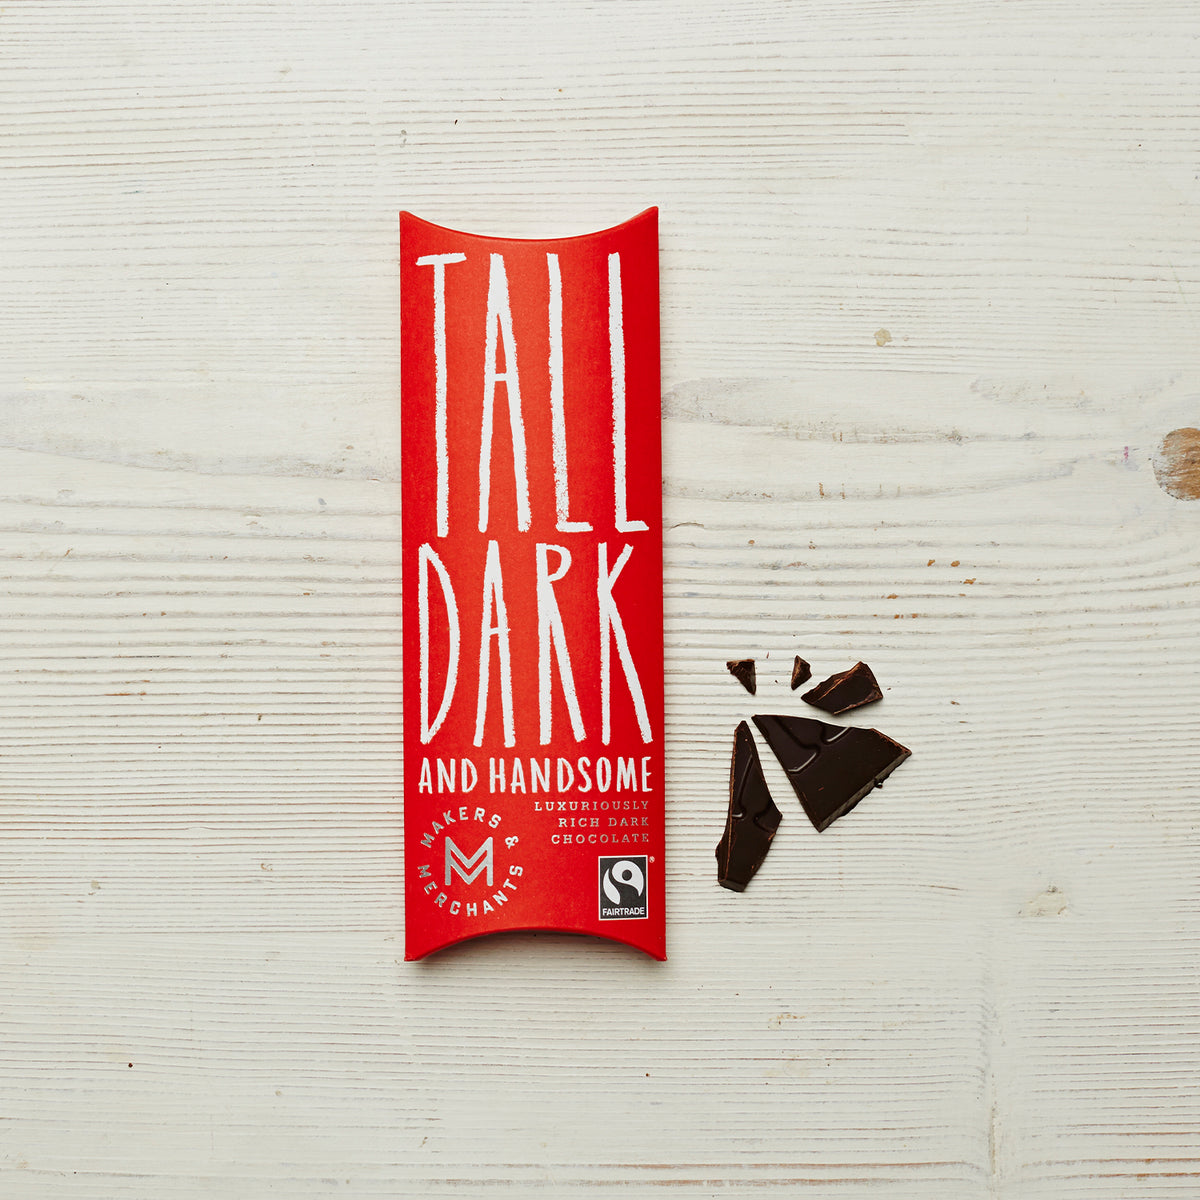 Tall Dark & Handsome